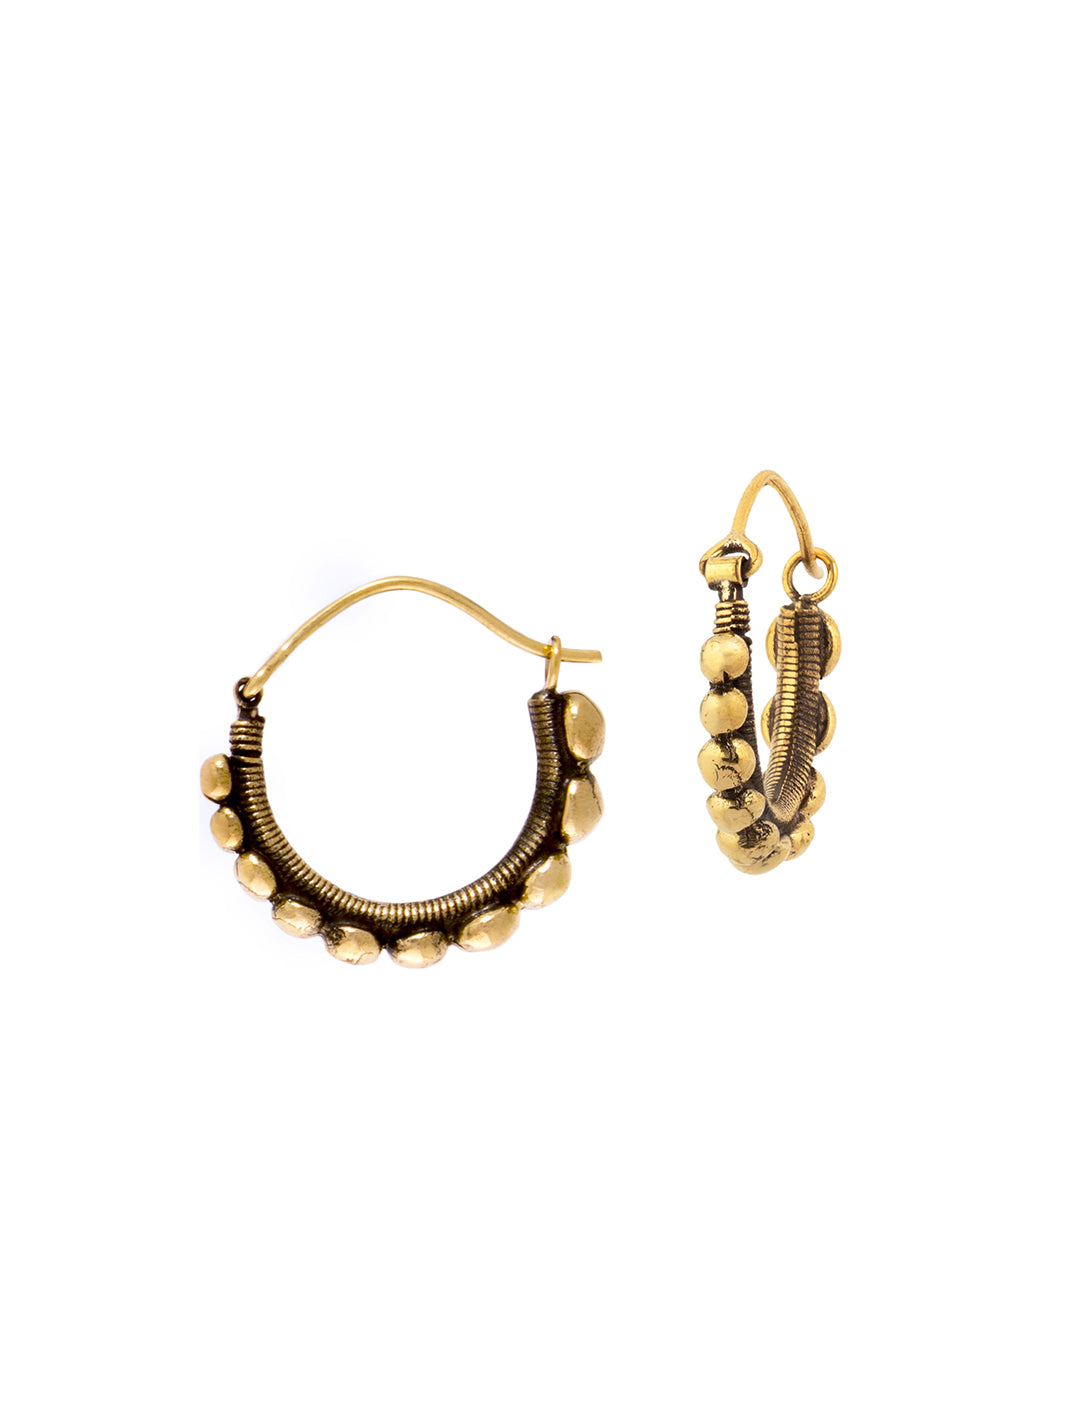 Hilltribe Tribal Hoops Earrings by Tribali - Psylo Fashion